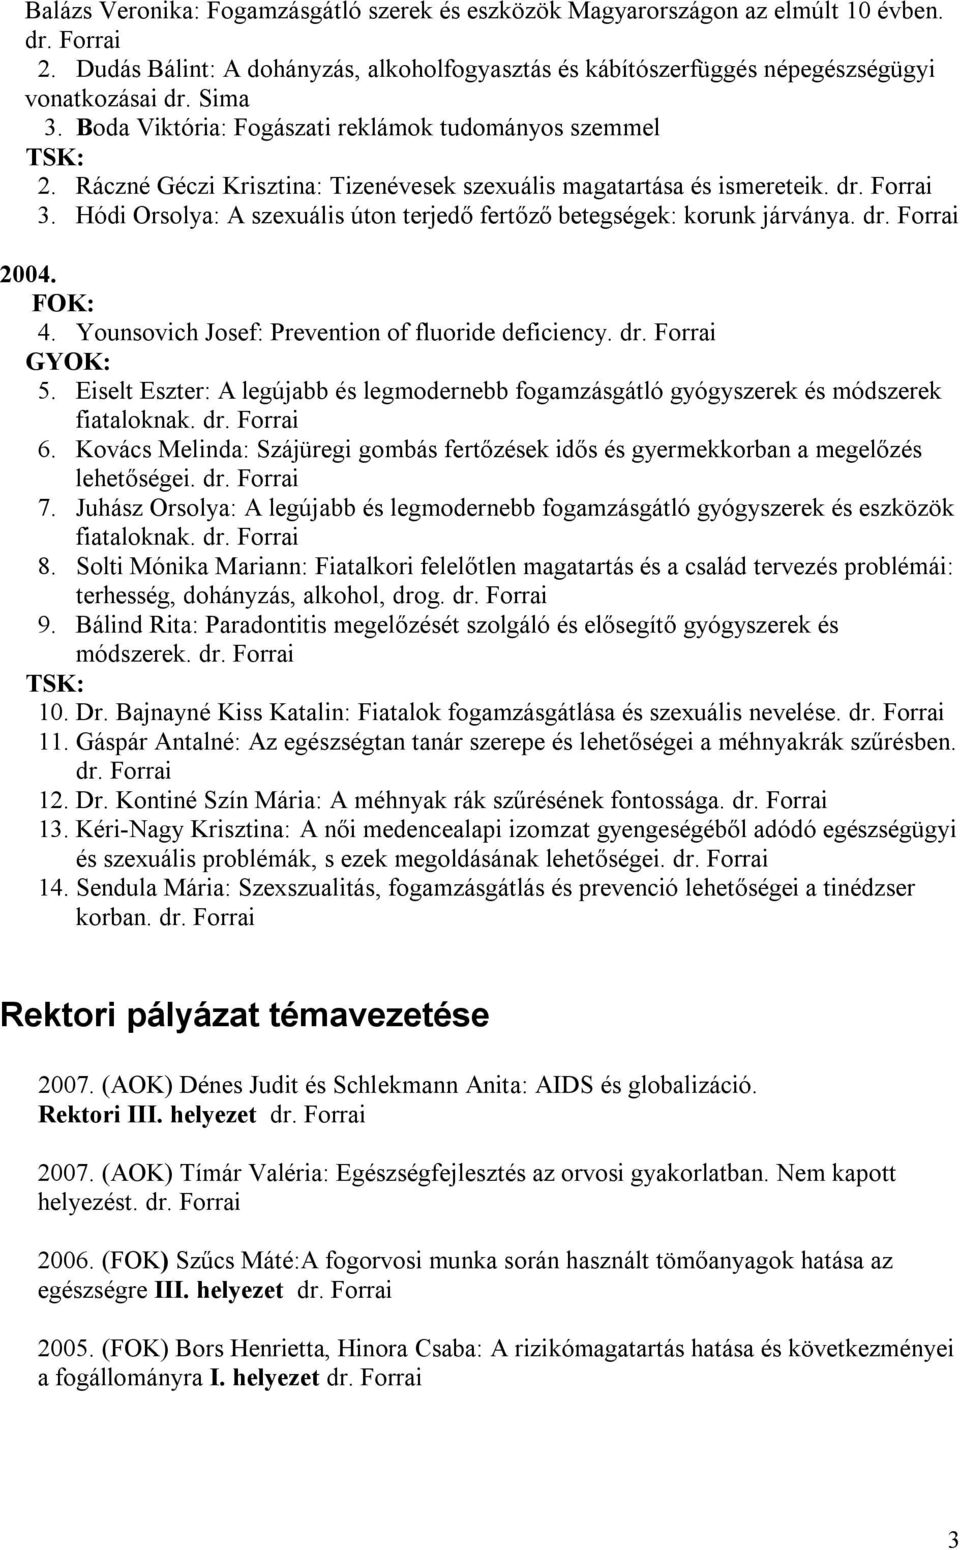 Hódi Orsolya: A szexuális úton terjedő fertőző betegségek: korunk járványa. dr. Forrai 2004. FOK: 4. Younsovich Josef: Prevention of fluoride deficiency. dr. Forrai GYOK: 5.